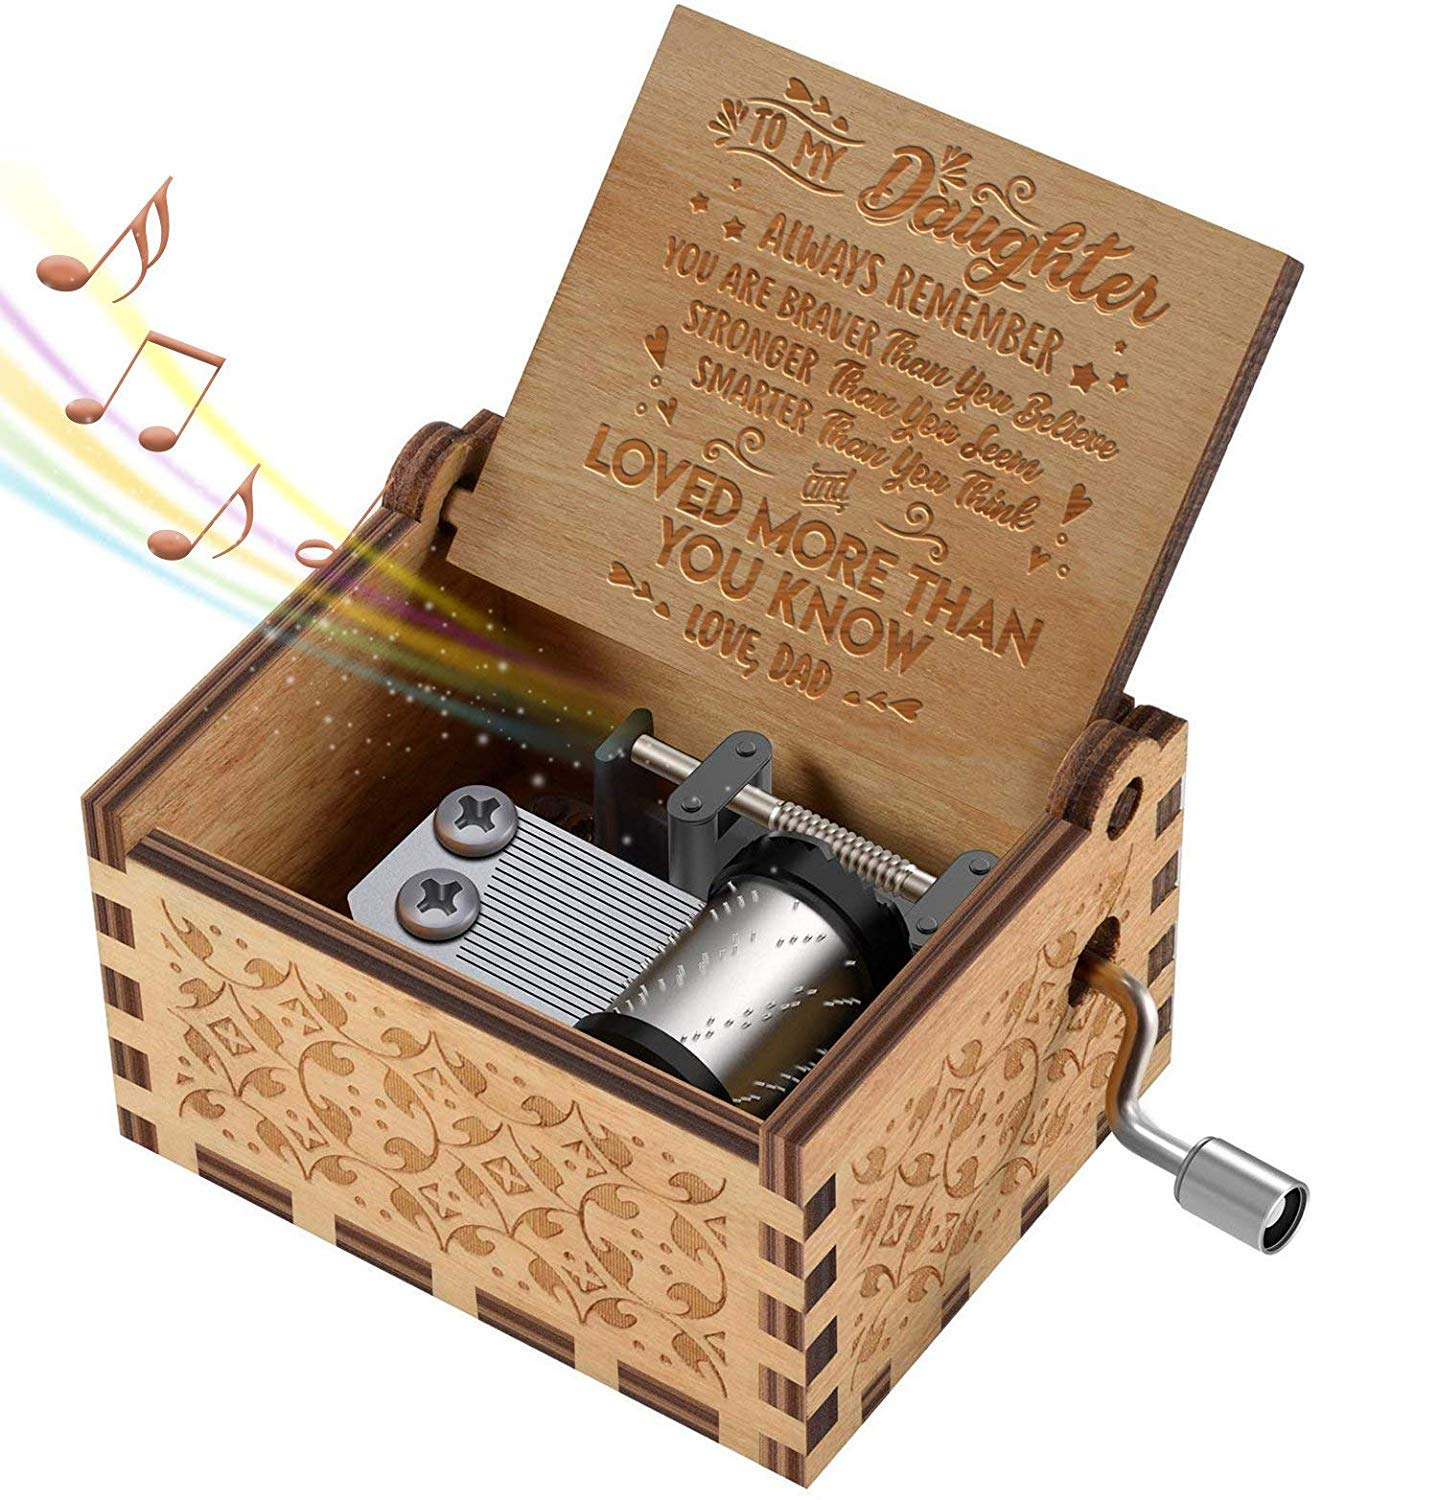 Hand Crank Music Box for Daughter Gifts from Dad, Play The Tune You are My Sunshine Unique Gifts for Daughter Vintage Engraving Wooden Music Box by Sooye